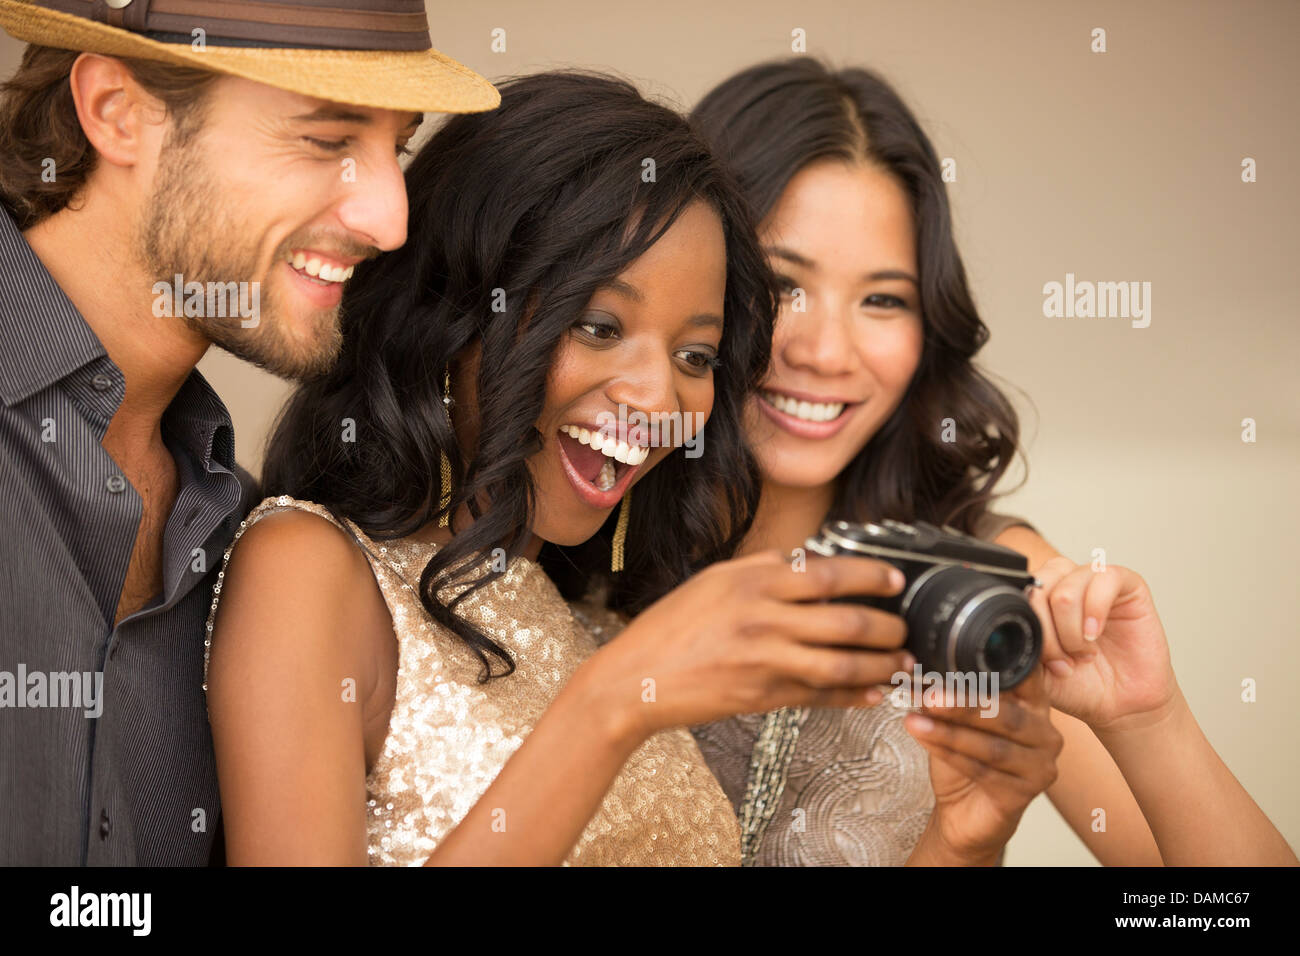 Friends using camera at party - Stock Image